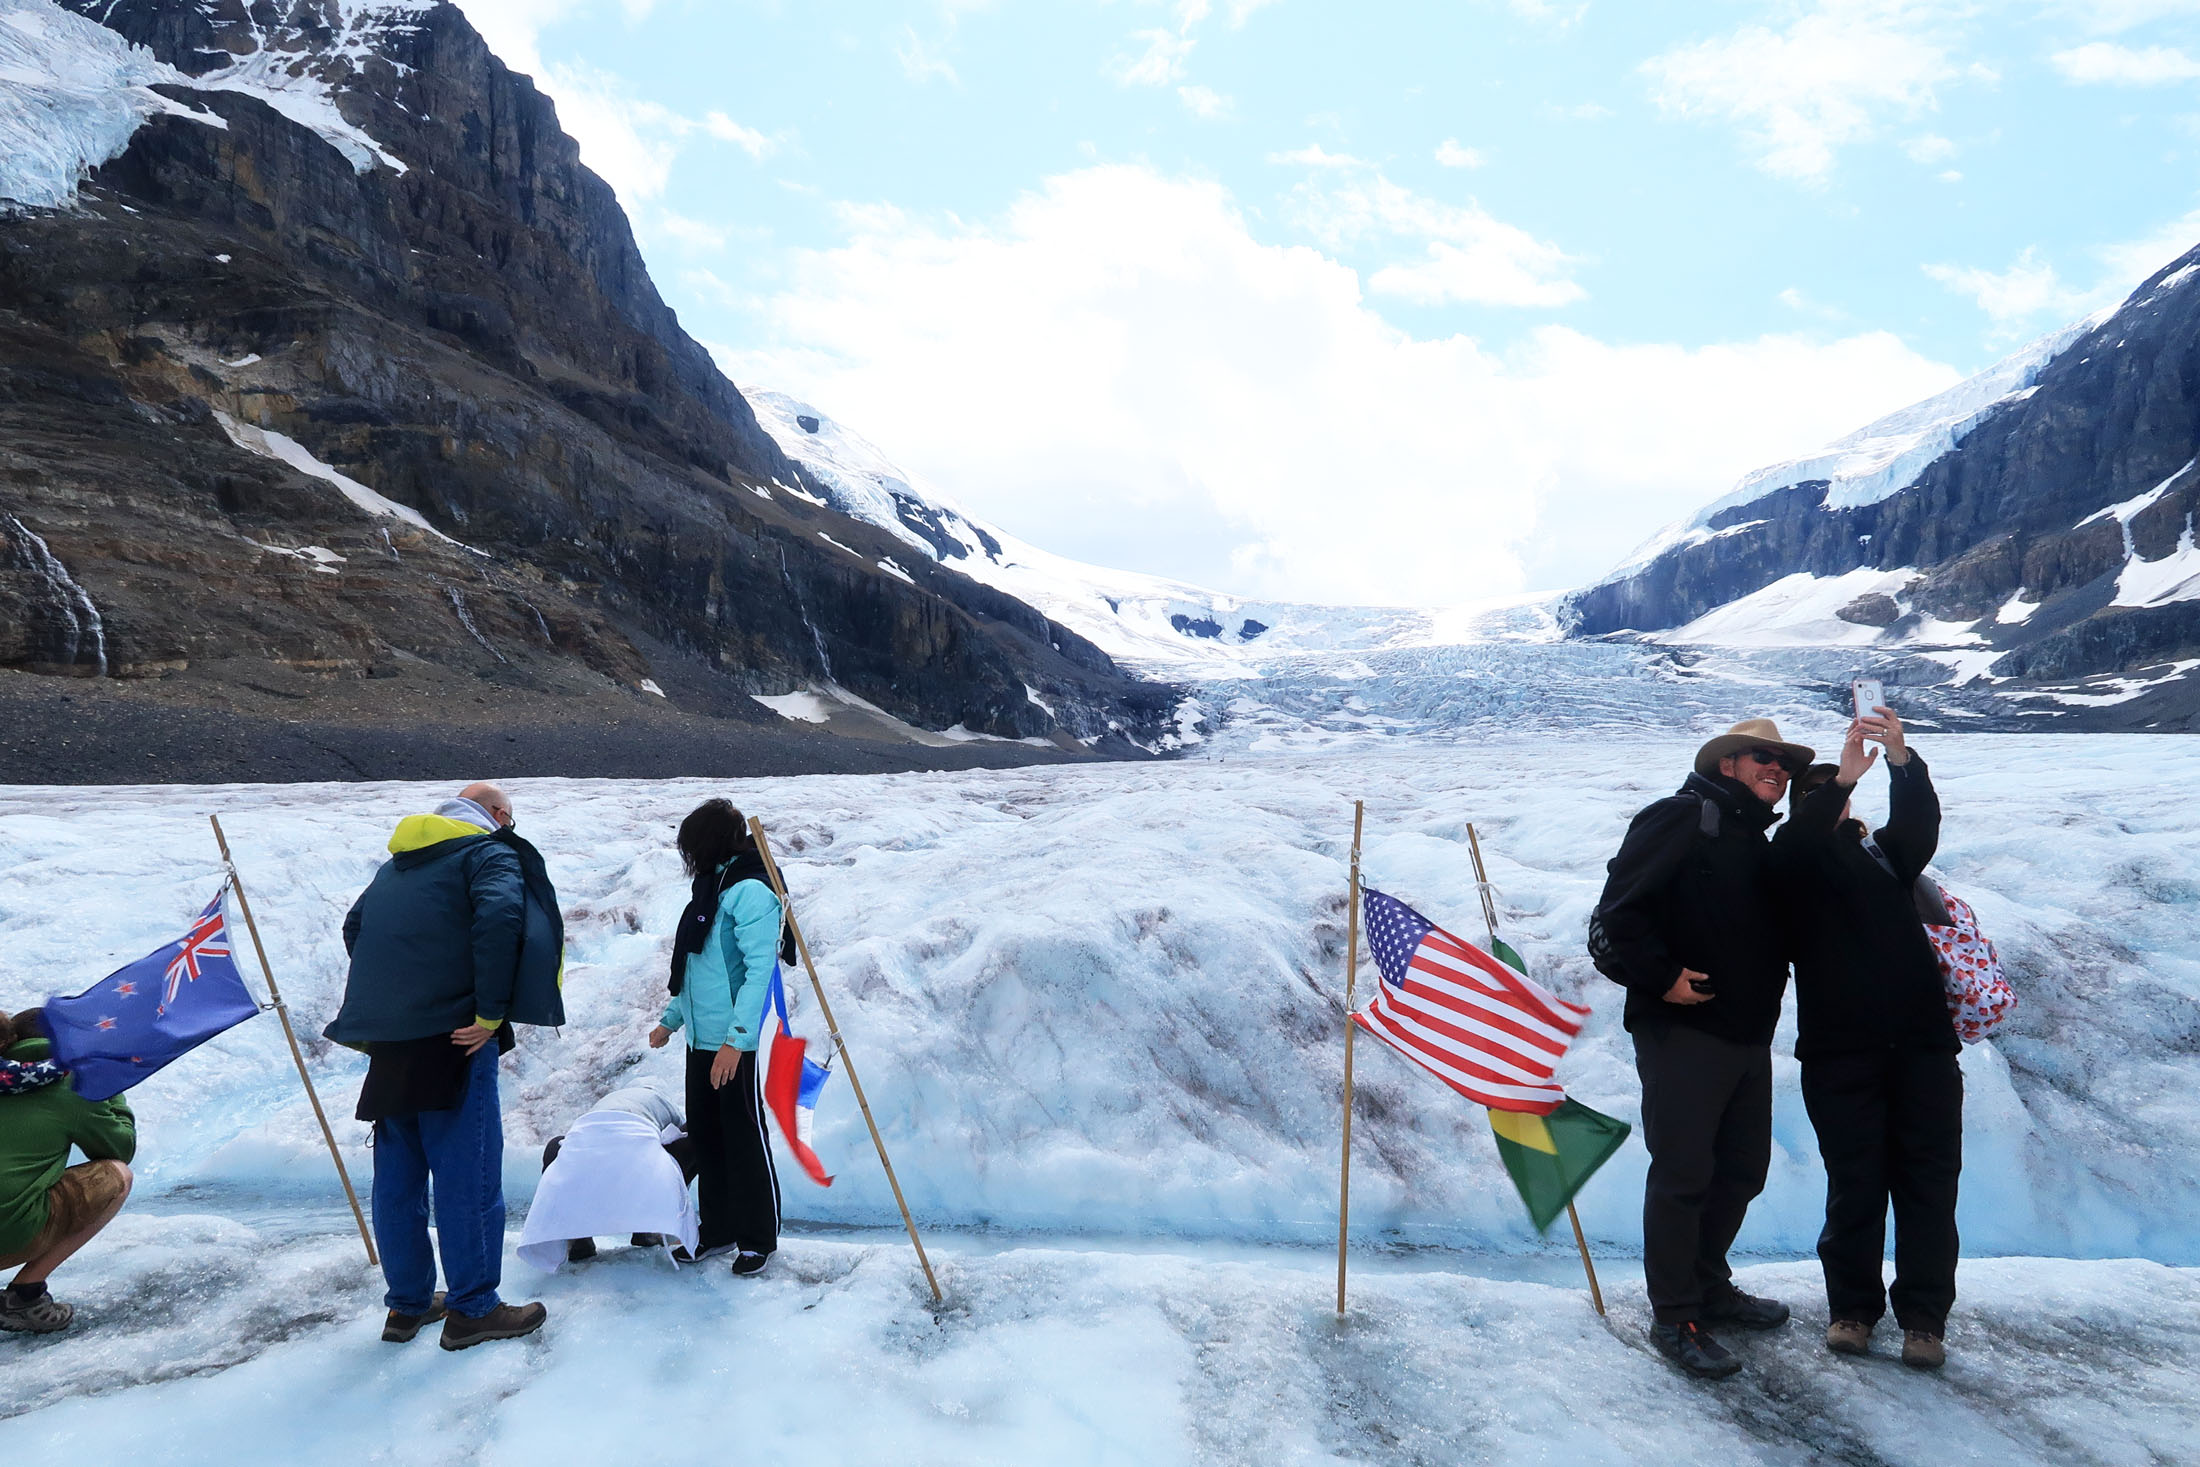 More than 800,000 travelers from many countries visit the Athabasca Glacier each summer on the Columbia Icefield Adventure. (Craig Davis/craigslegztravels.com)